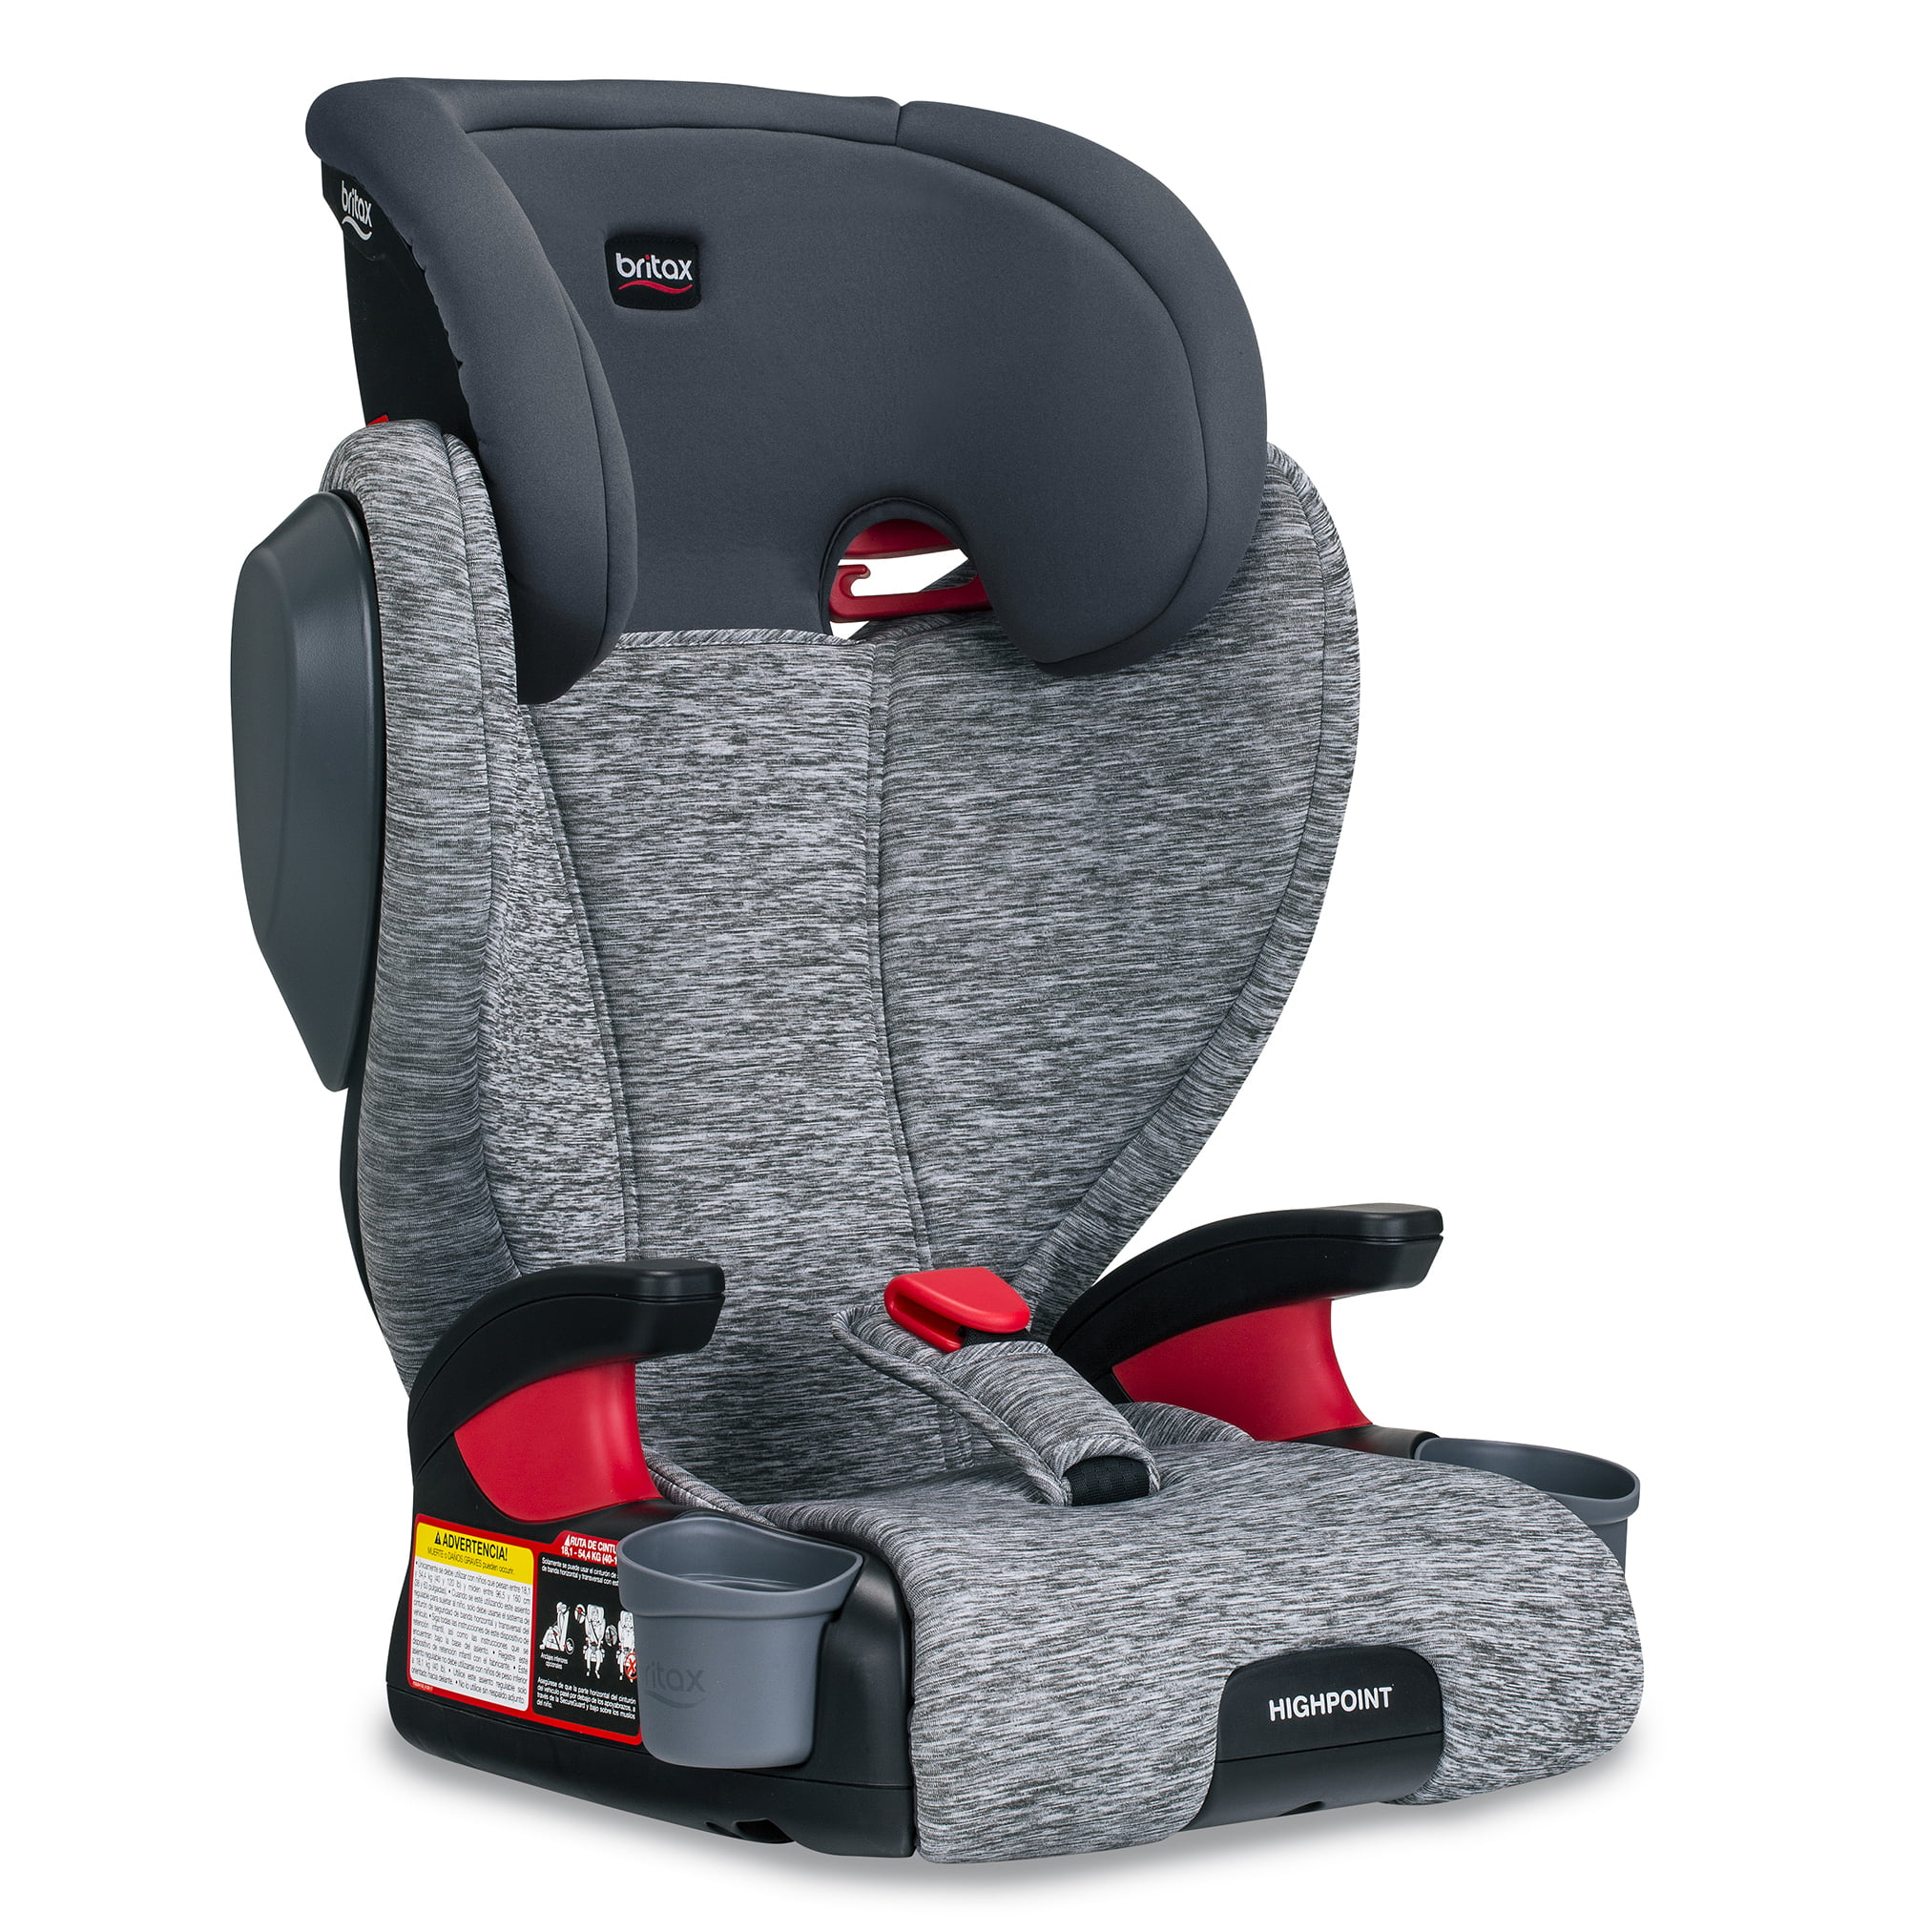 Britax Highpoint Belt-Positioning Booster Seat, Asher by Britax